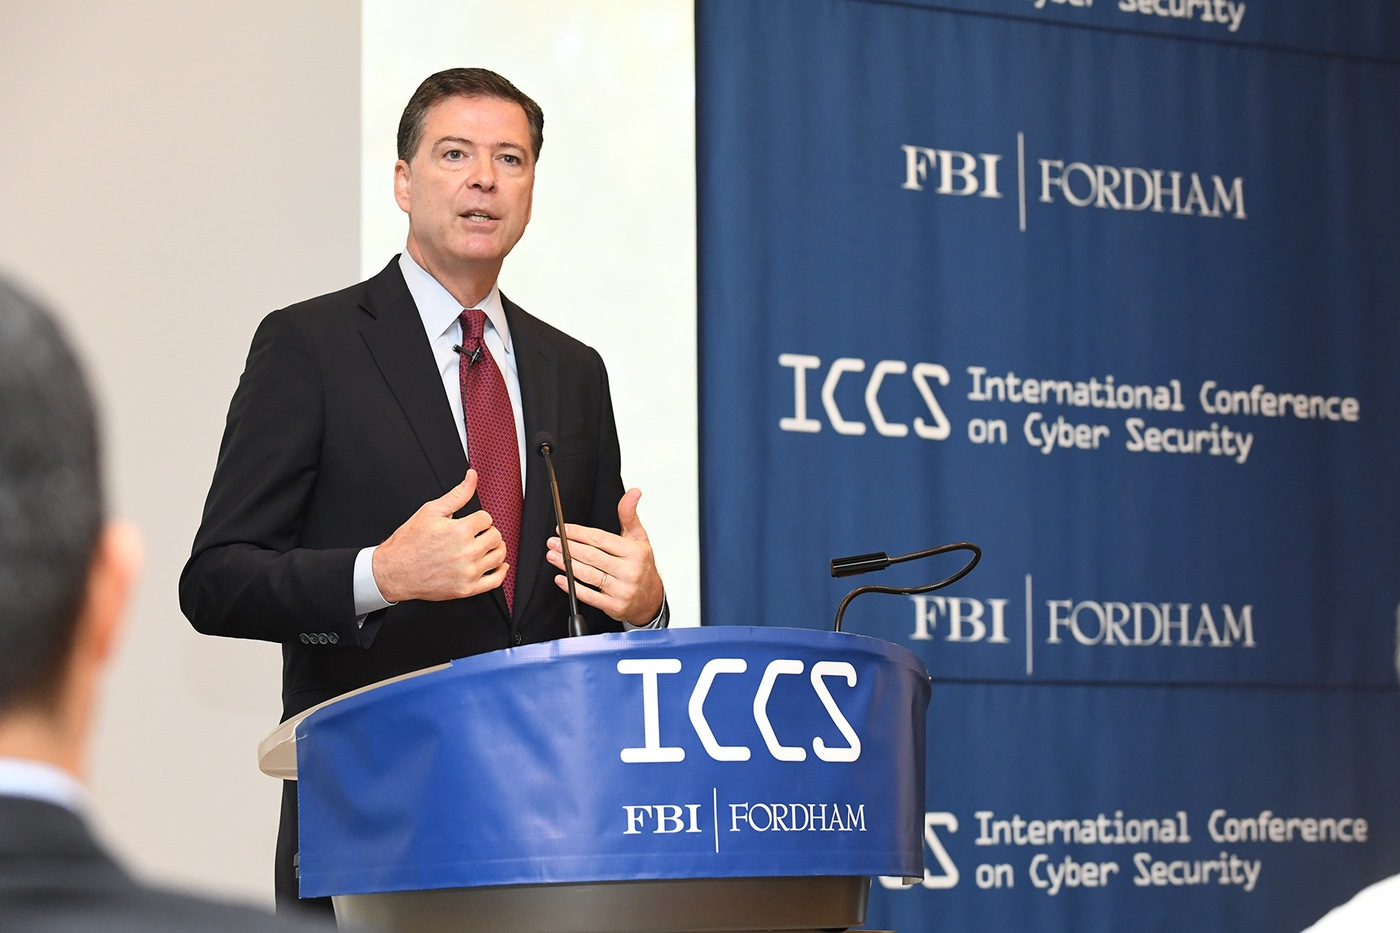 New U.S. Cyber Security Policy Solidifies FBI role